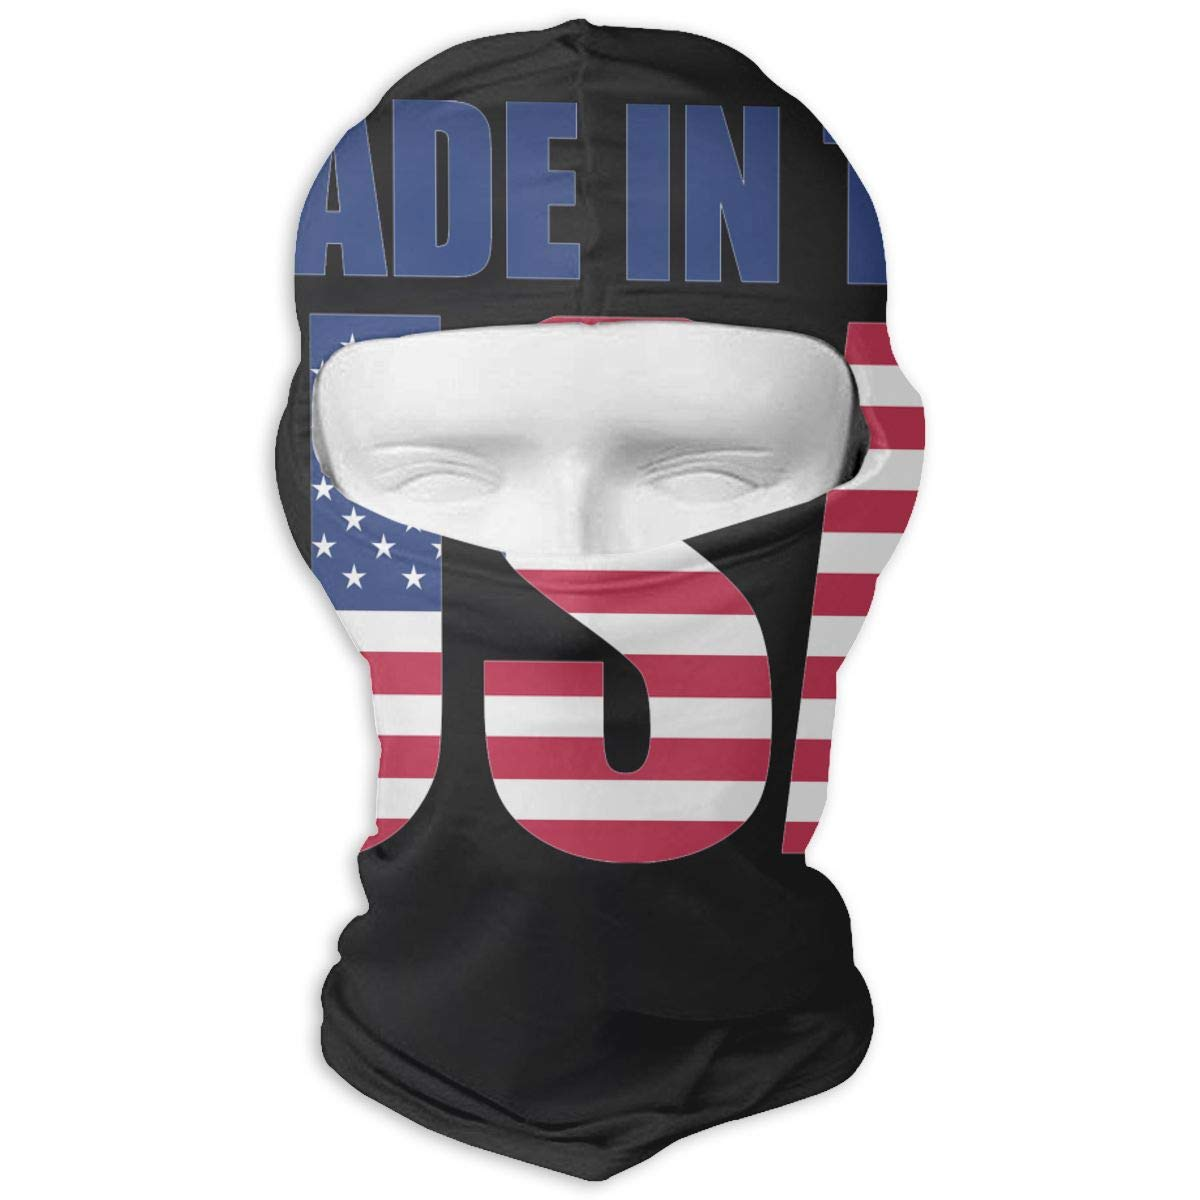 LaoJi Made in The USA Winter Ski Mask Balaclava Hood - Wind-Resistant Face Mask